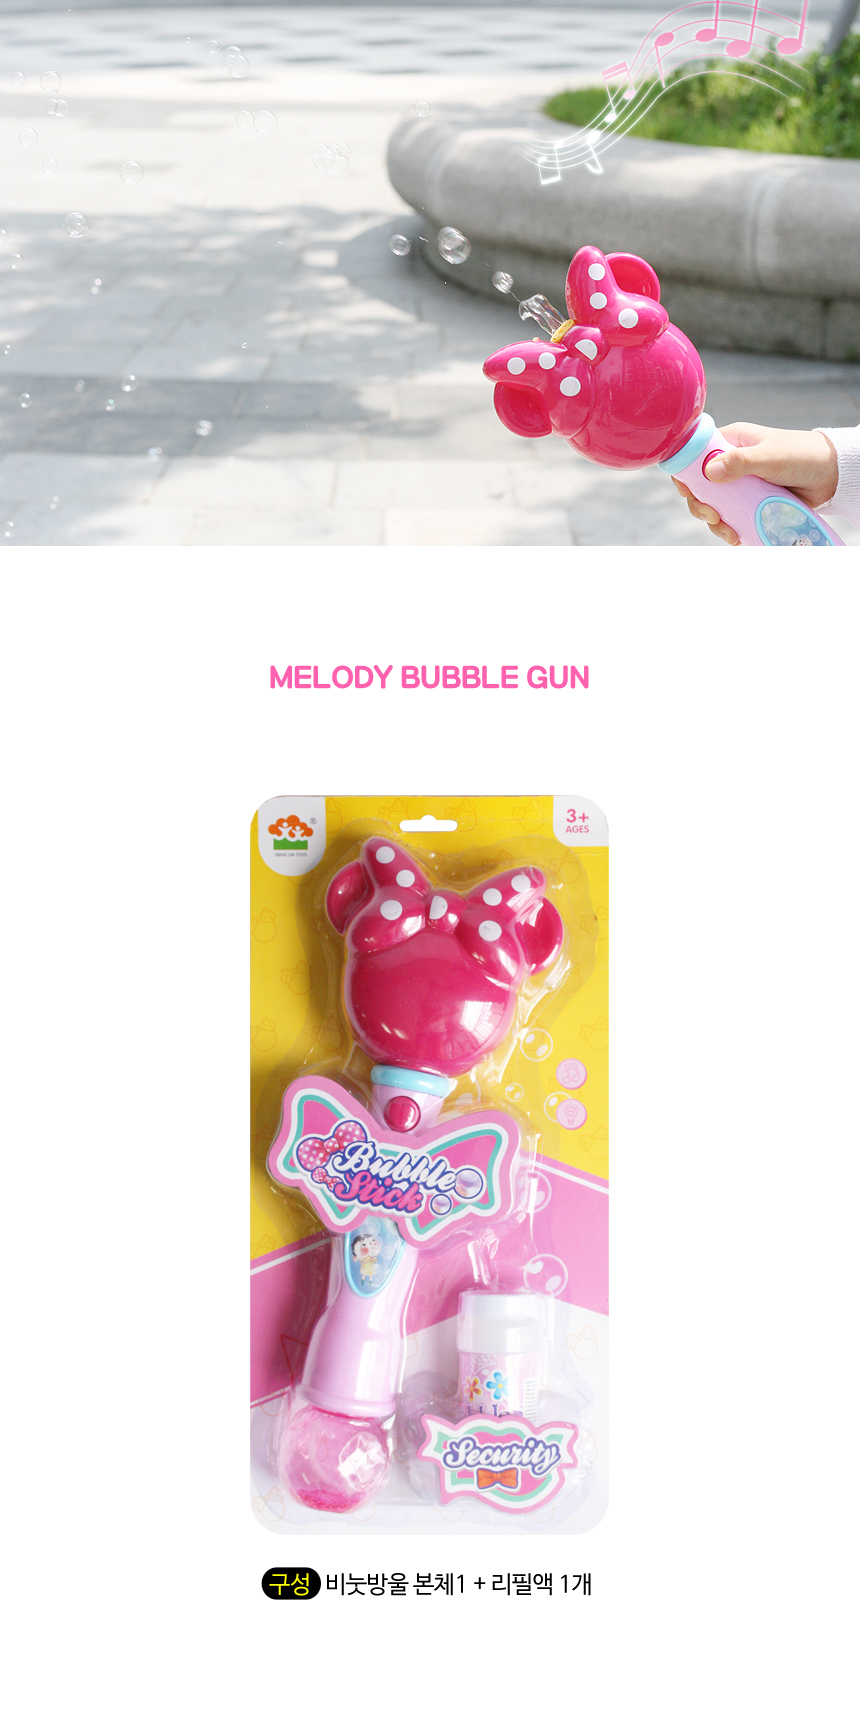 pink_bubblegun_022.jpg